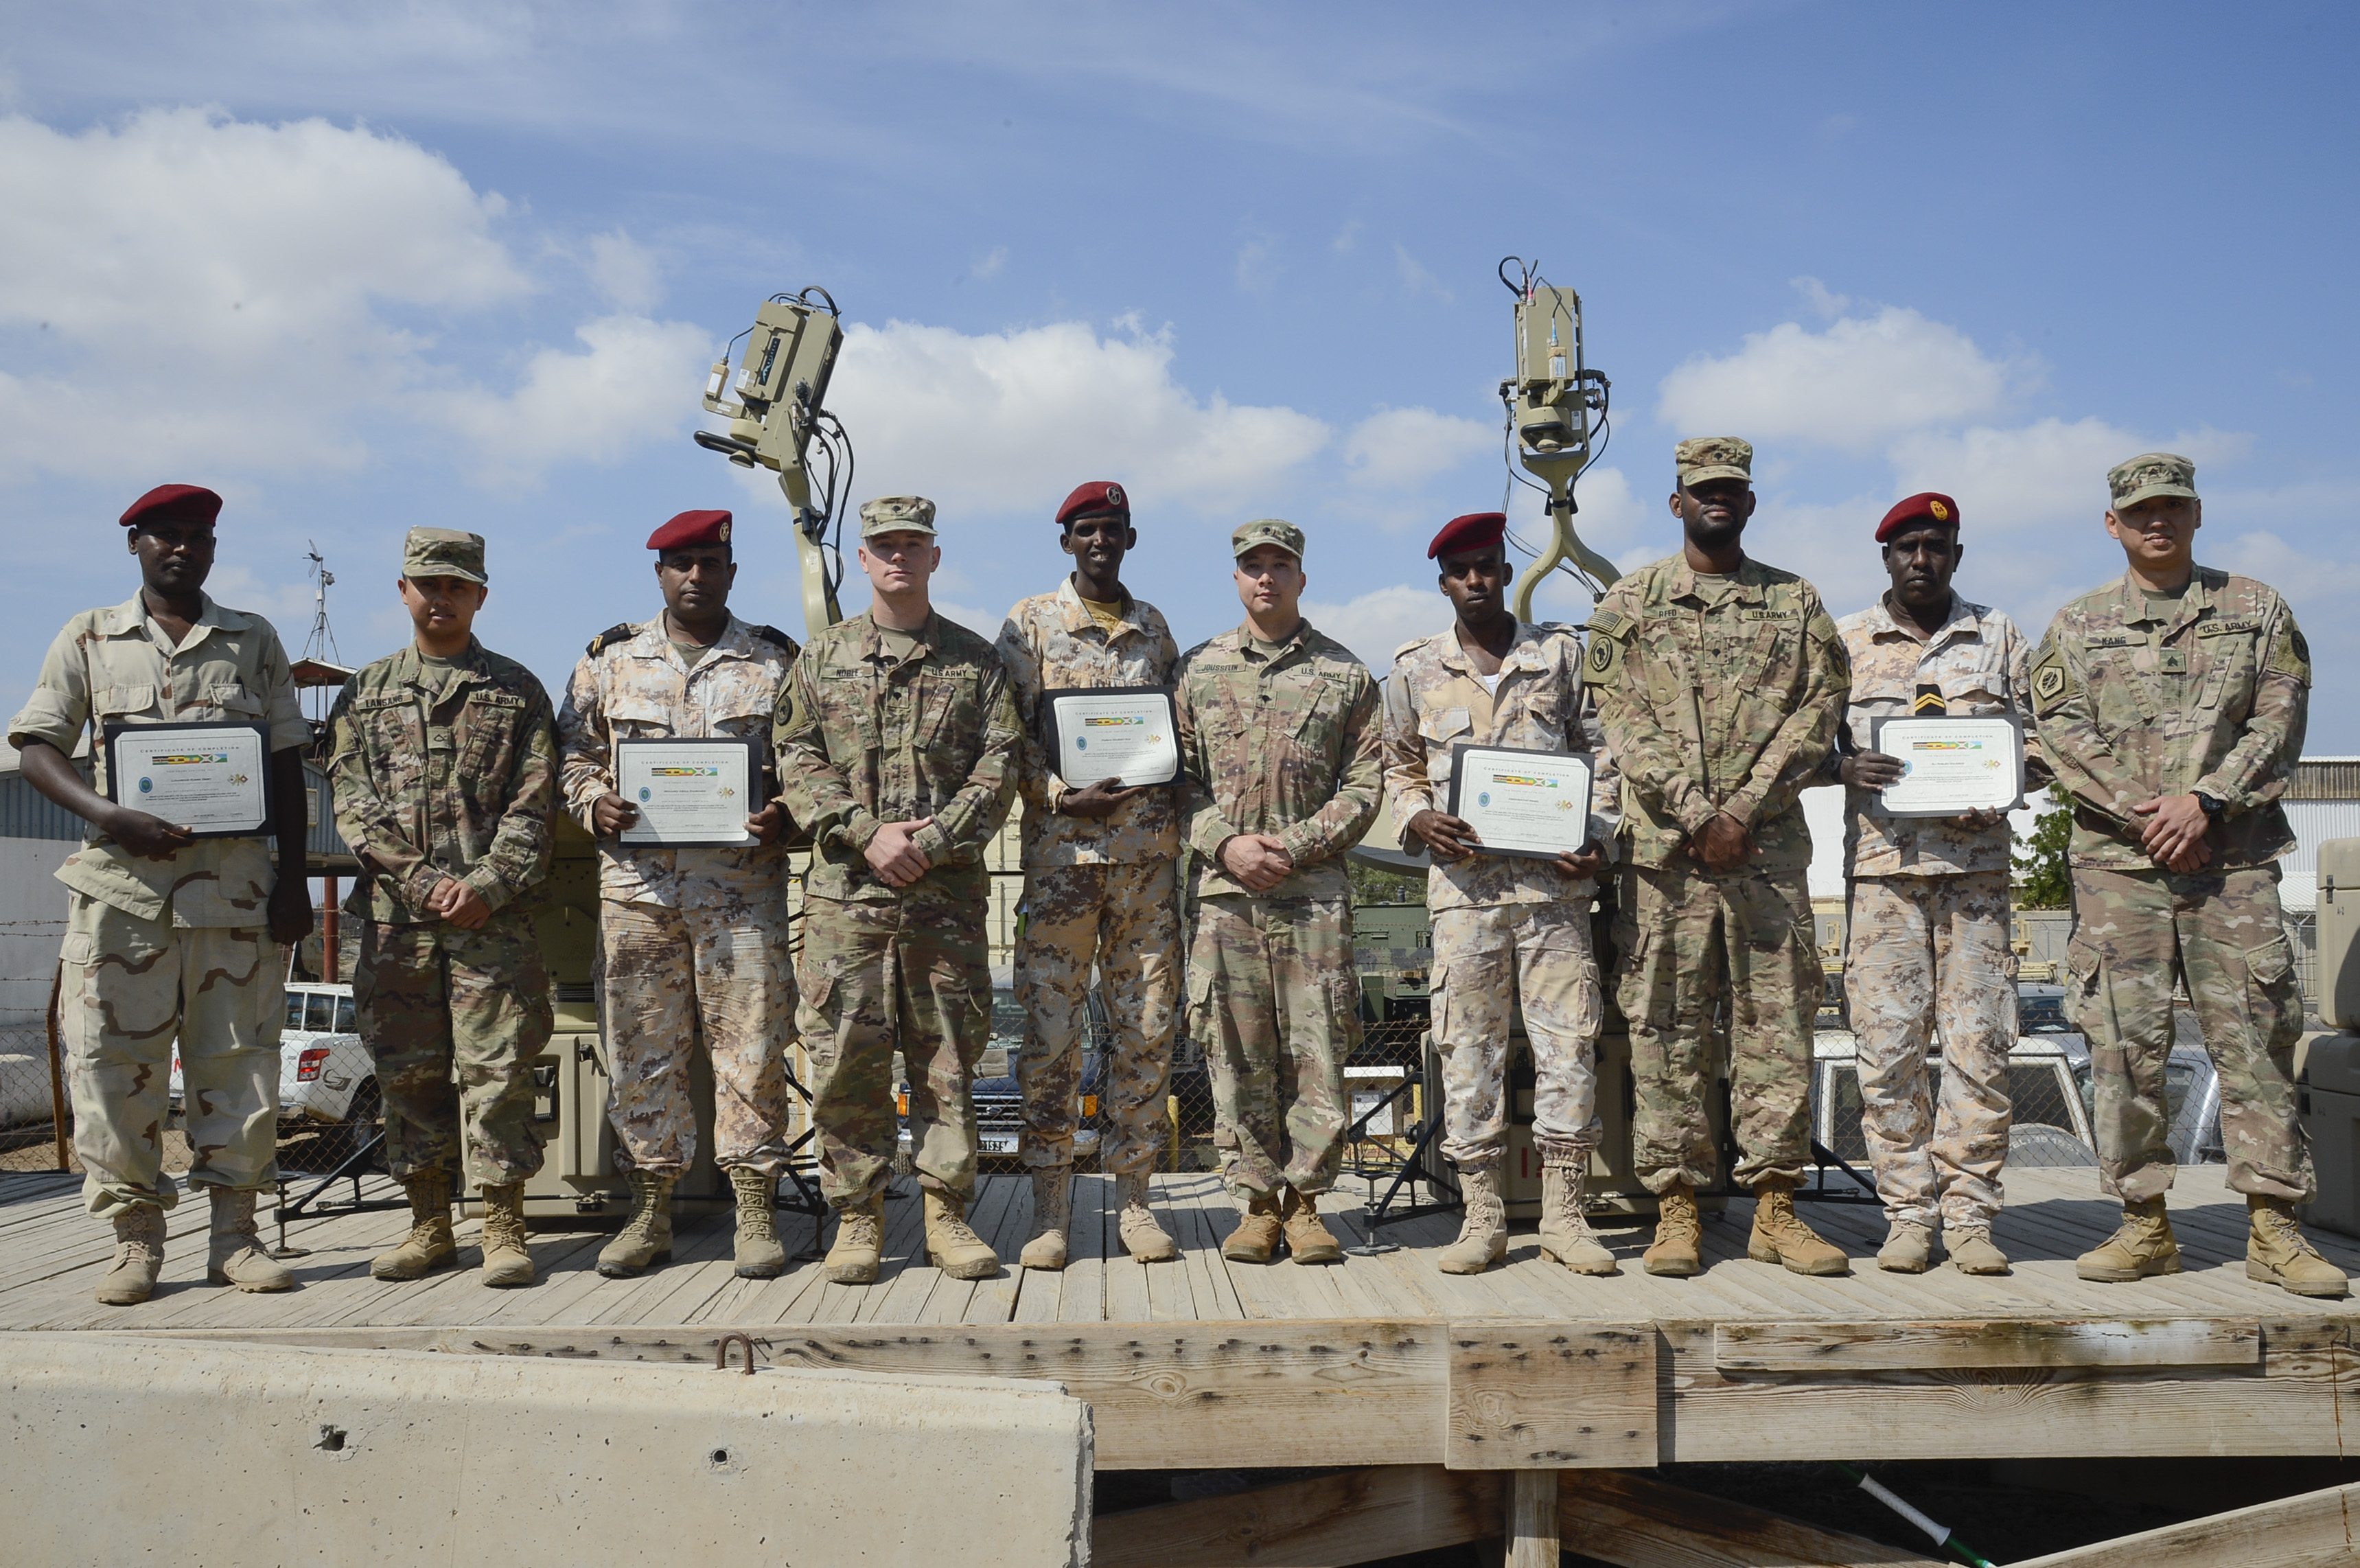 U.S. Soldiers assigned to the Combined Joint Task Force - Horn of Africa (CJTF-HOA) Communications Directorate and members of the Djibouti Armed Forces pose for a photo after completing a military-to-military exchange course at Camp Lemonnier, Djibouti, Jan. 17, 2018. Throughout a two-week period, communications experts advised Djiboutian service members on how to set up, operate, maintain, and troubleshoot network equipment to increase communication capabilities between African Union Mission in Somalia forces. (U.S. Navy photo by Mass Communication Specialist 2nd Class Timothy M. Ahearn)